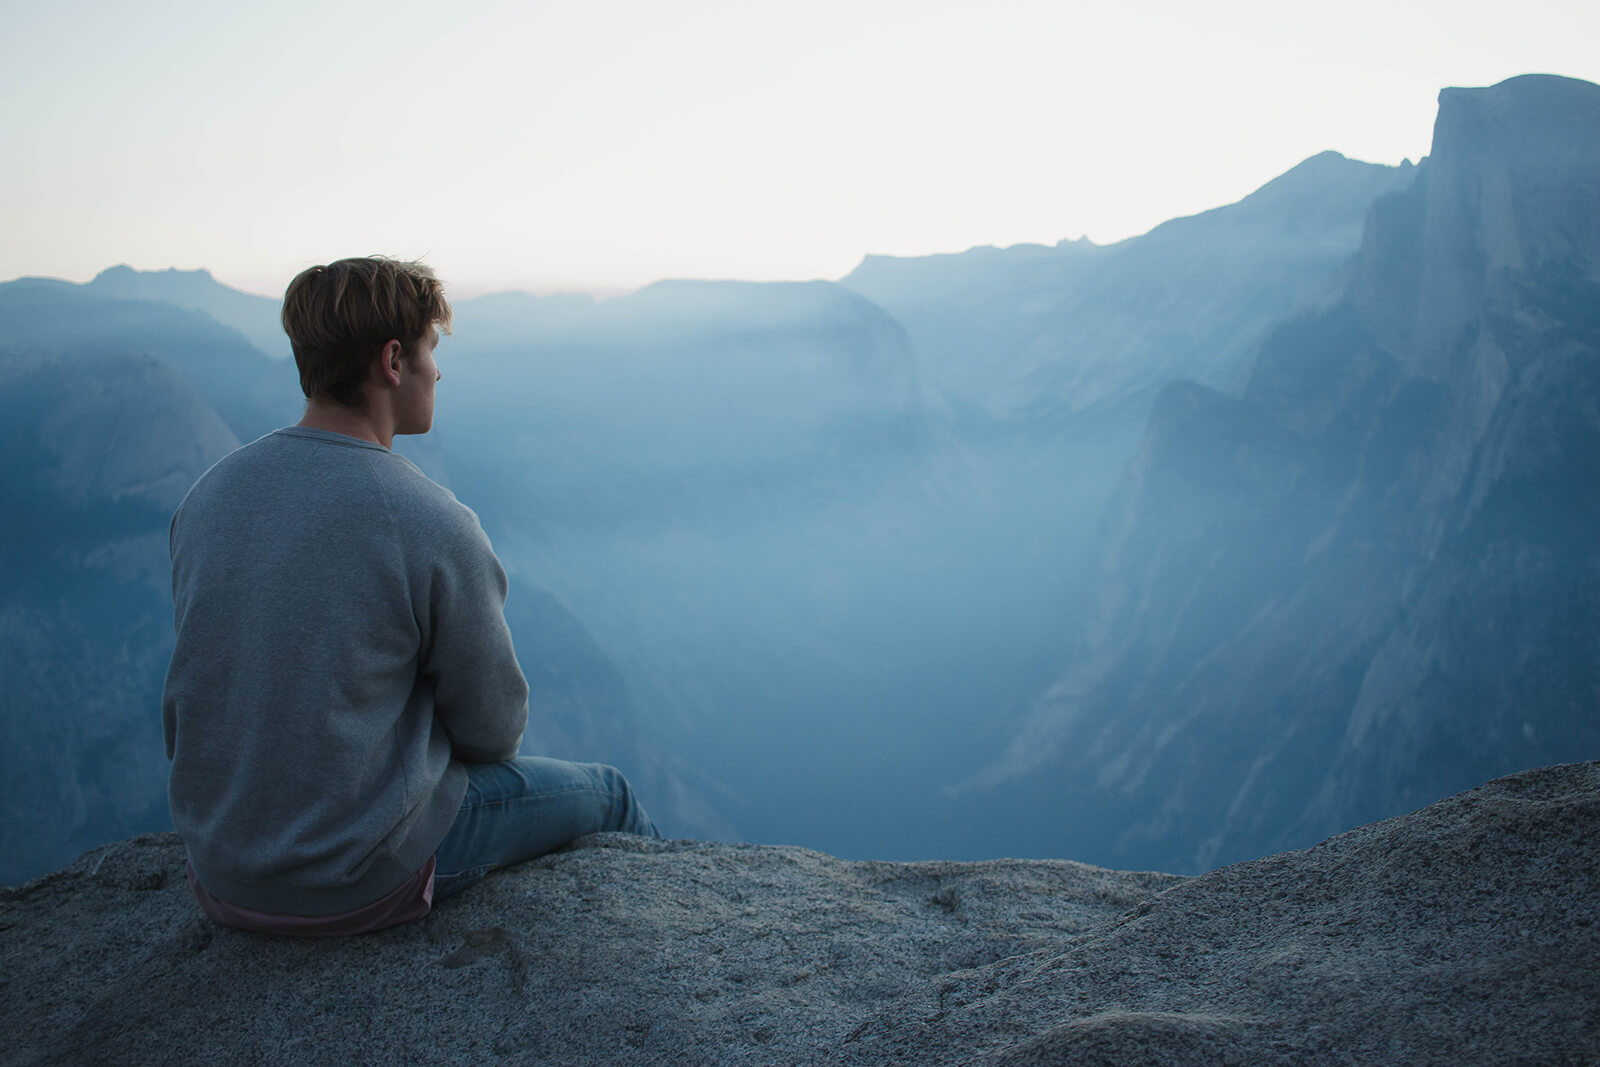 Man meditating on a clifftop